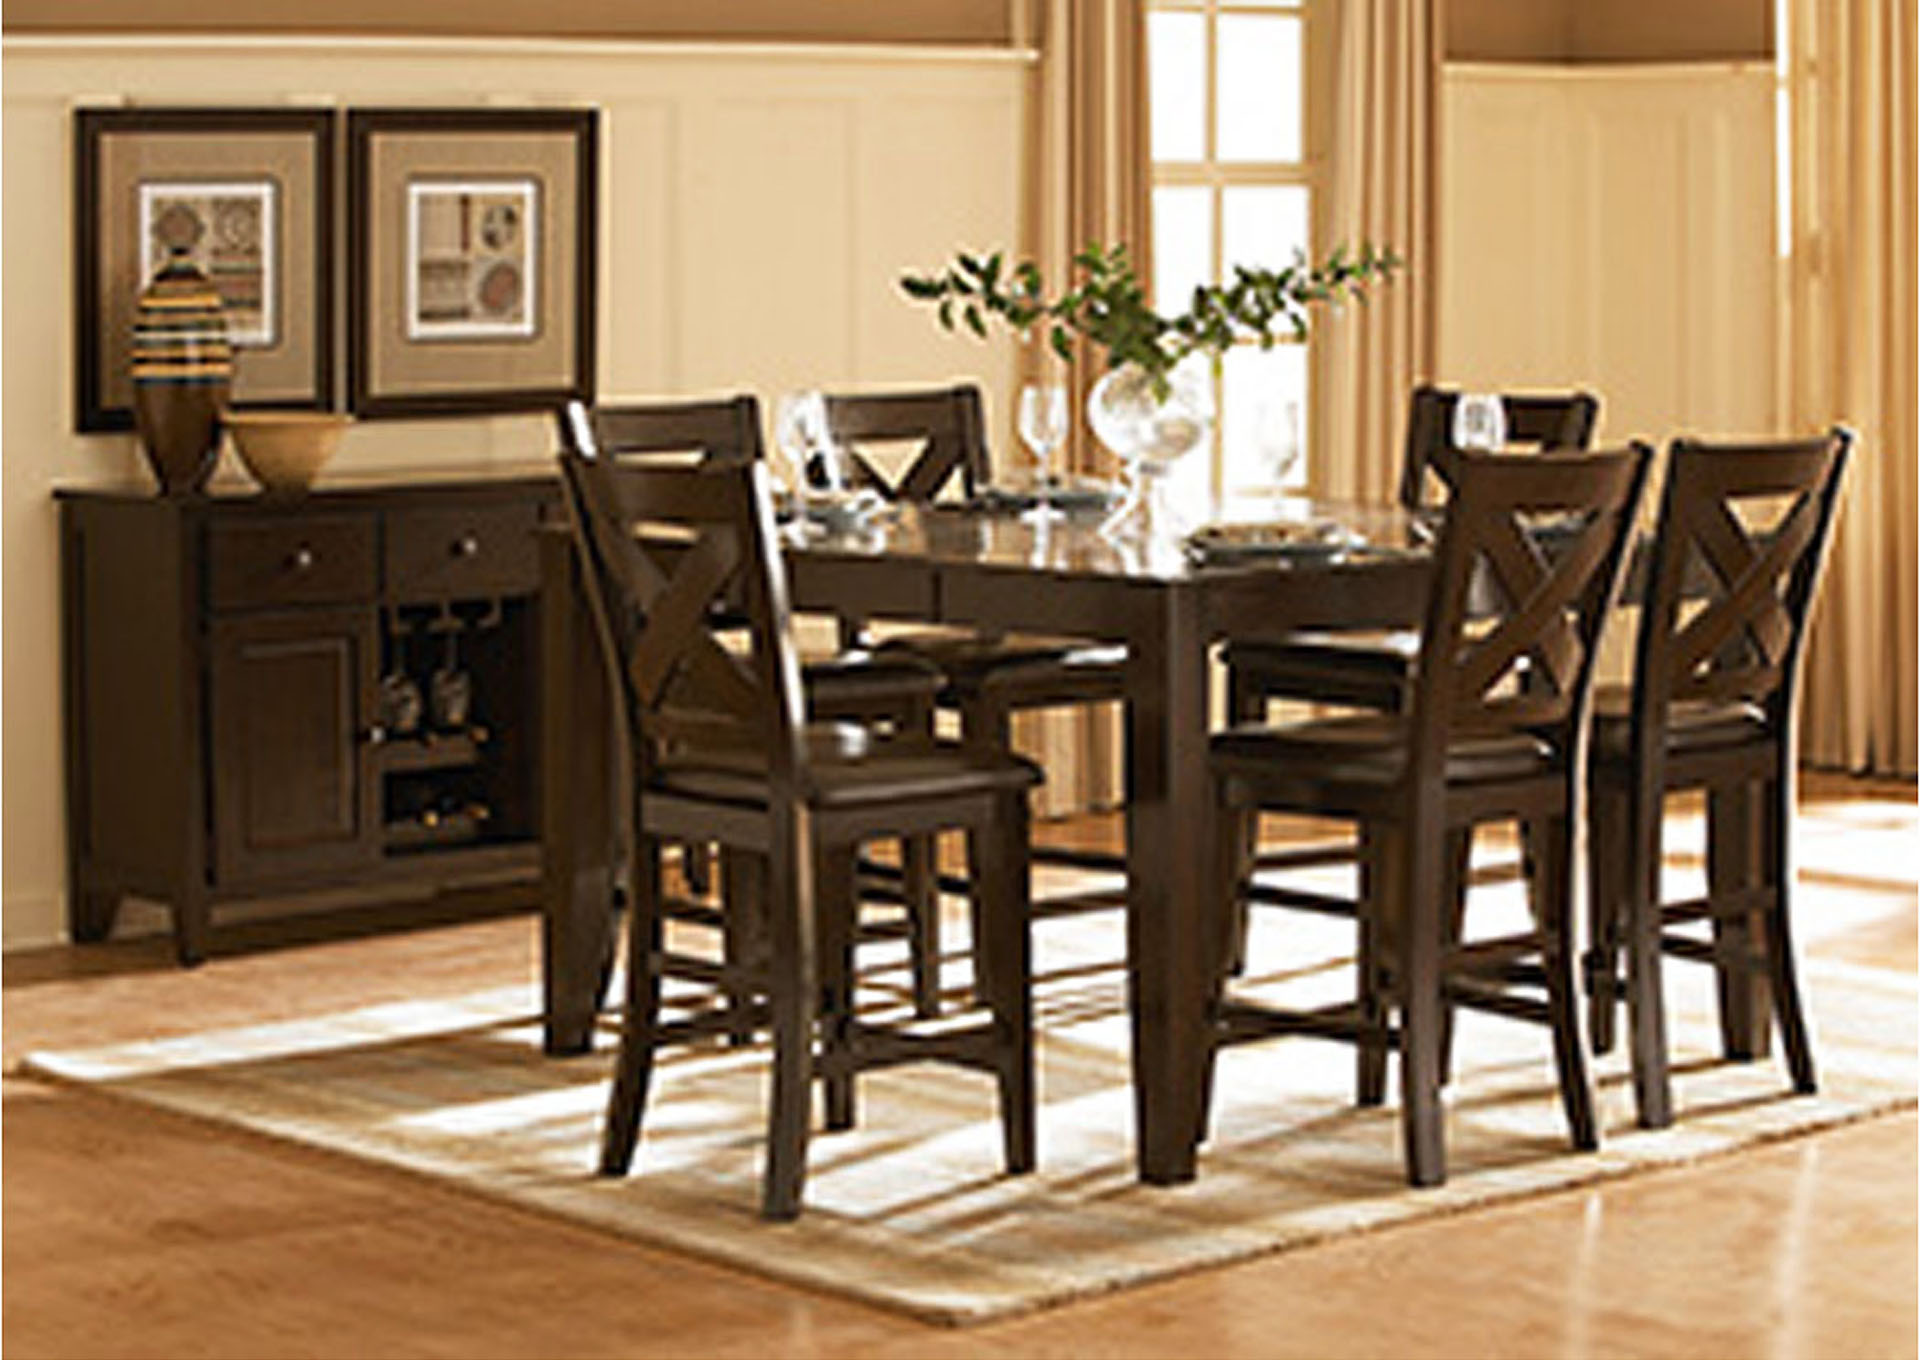 Crown Point Merlot Counter Height Dining Room Table w/4 Counter Height Chairs,Homelegance